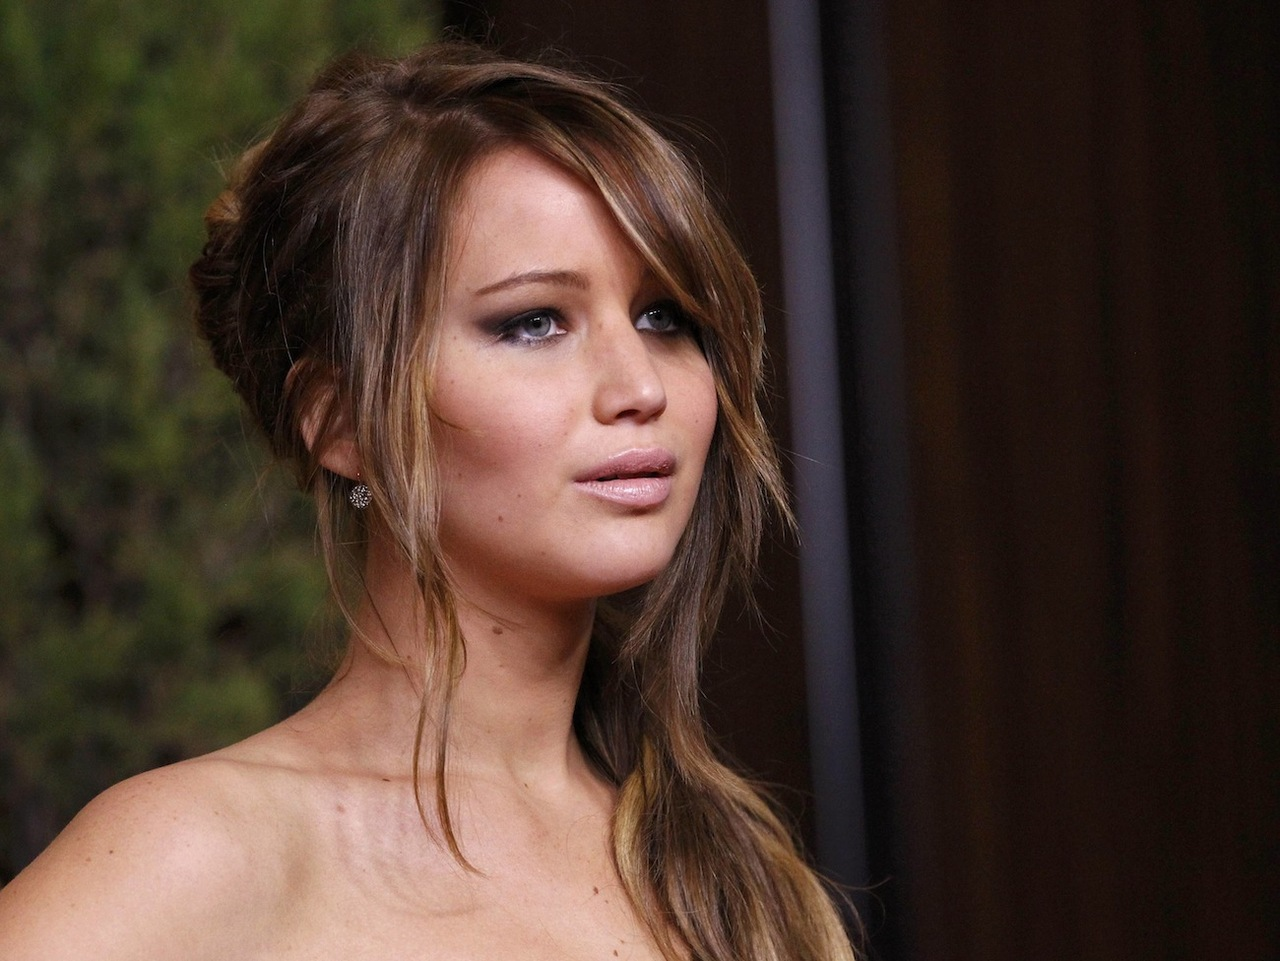 Another round of jennifer lawrence nu d 163 images are leaked by hackers